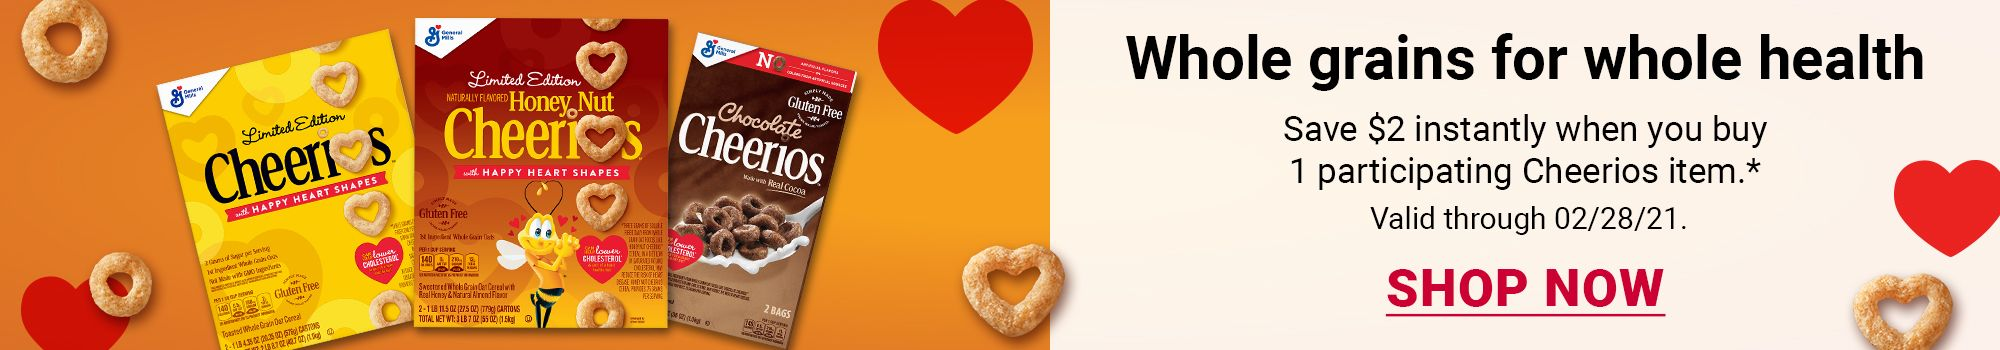 Whole grains for whole health. Save $2 instantly when you buy 1 participating Cheerios item. Valid through 02/28/21. Shop Now.